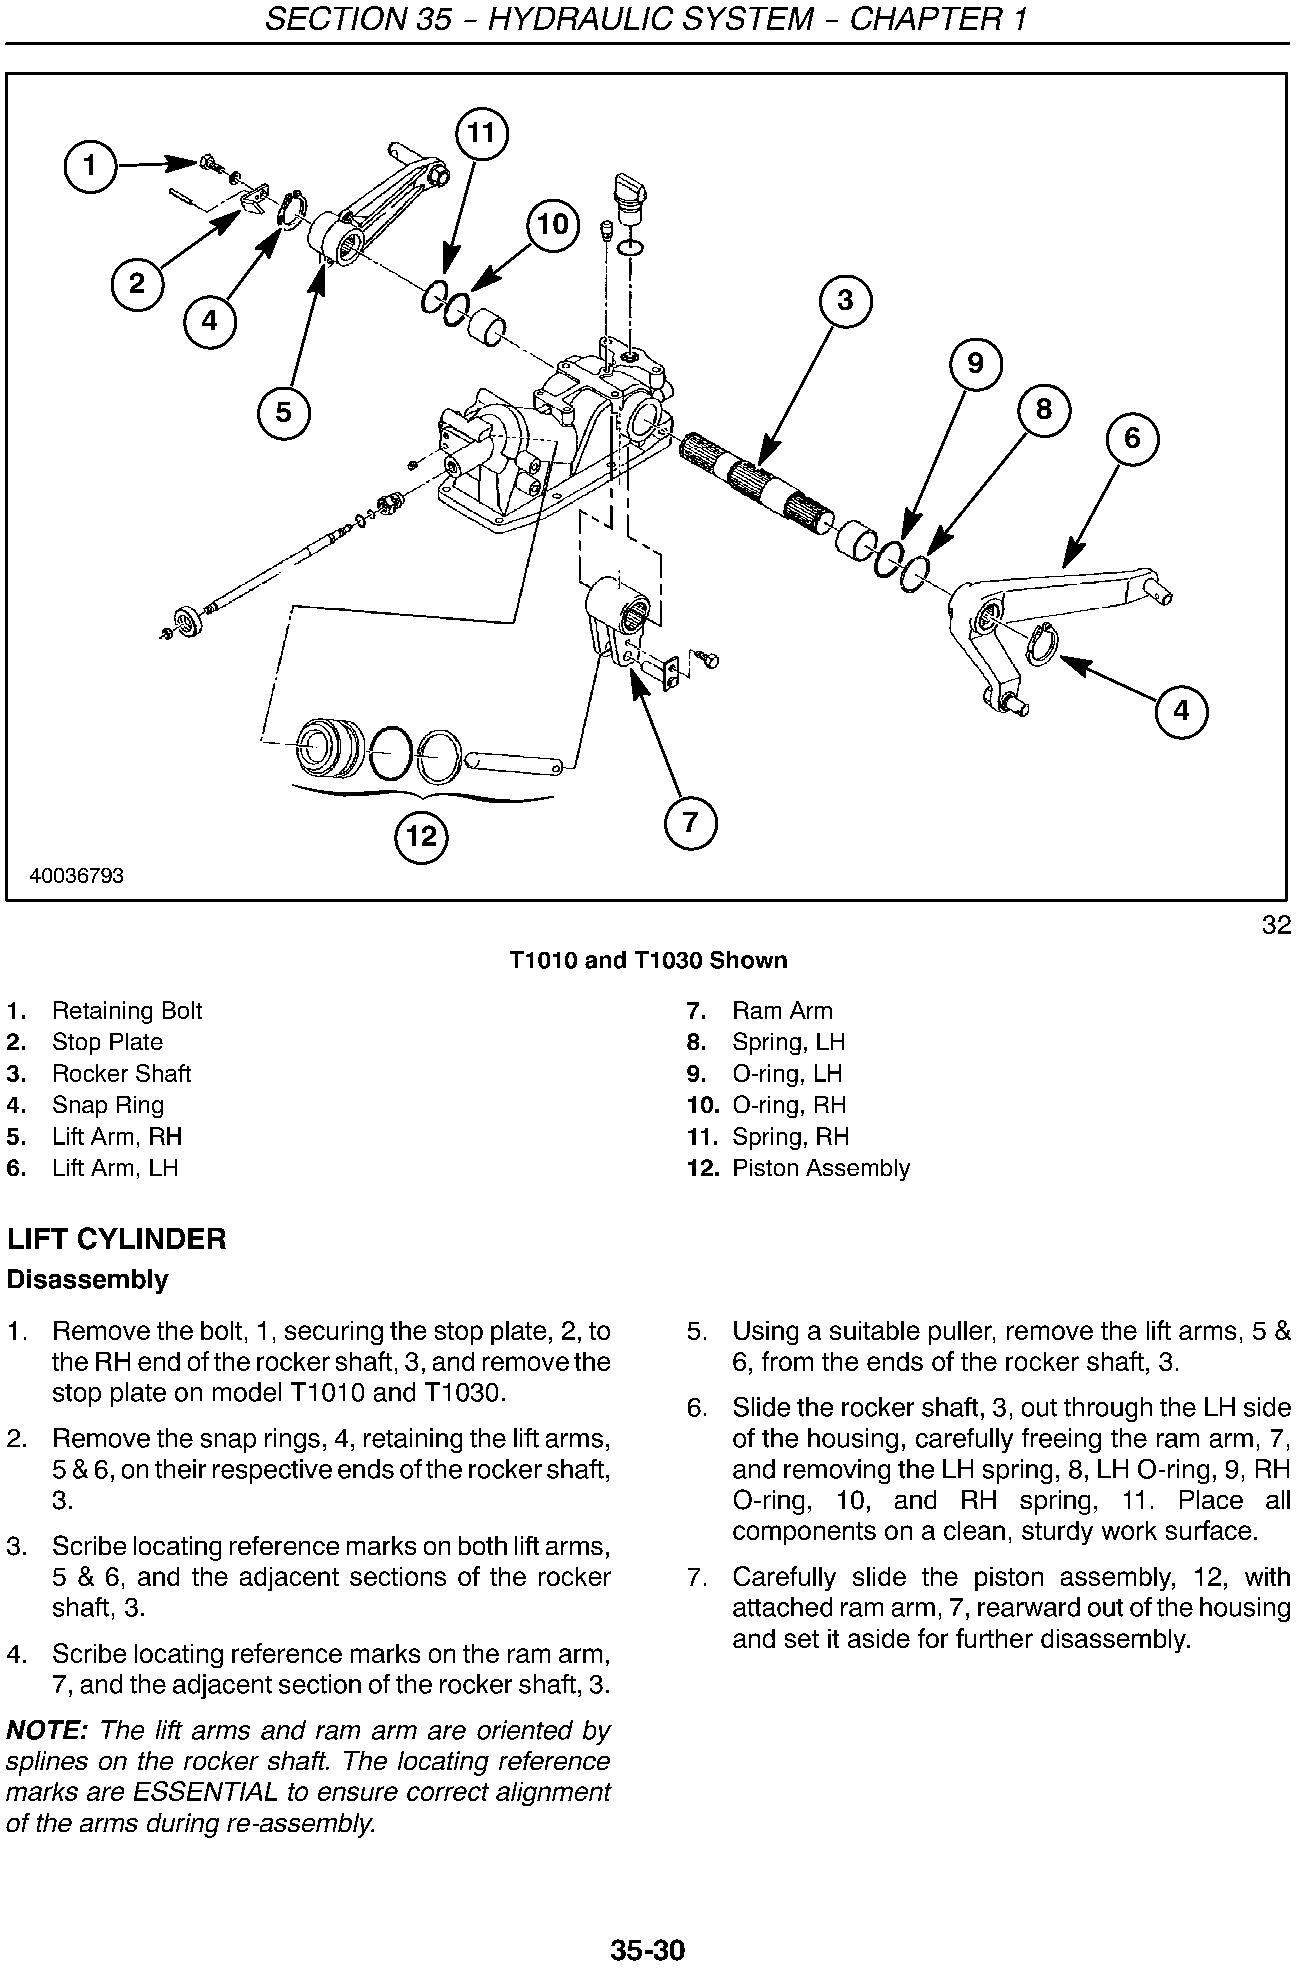 New Holland T1010, T1030, T1110 Tractor Service Manual - 2